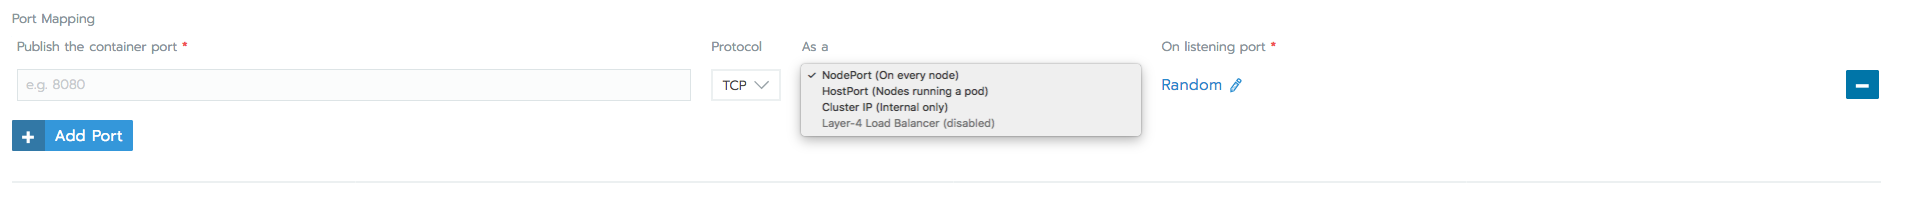 Layer 4 Load Balancing Disabled With MetalLB Configured · Issue